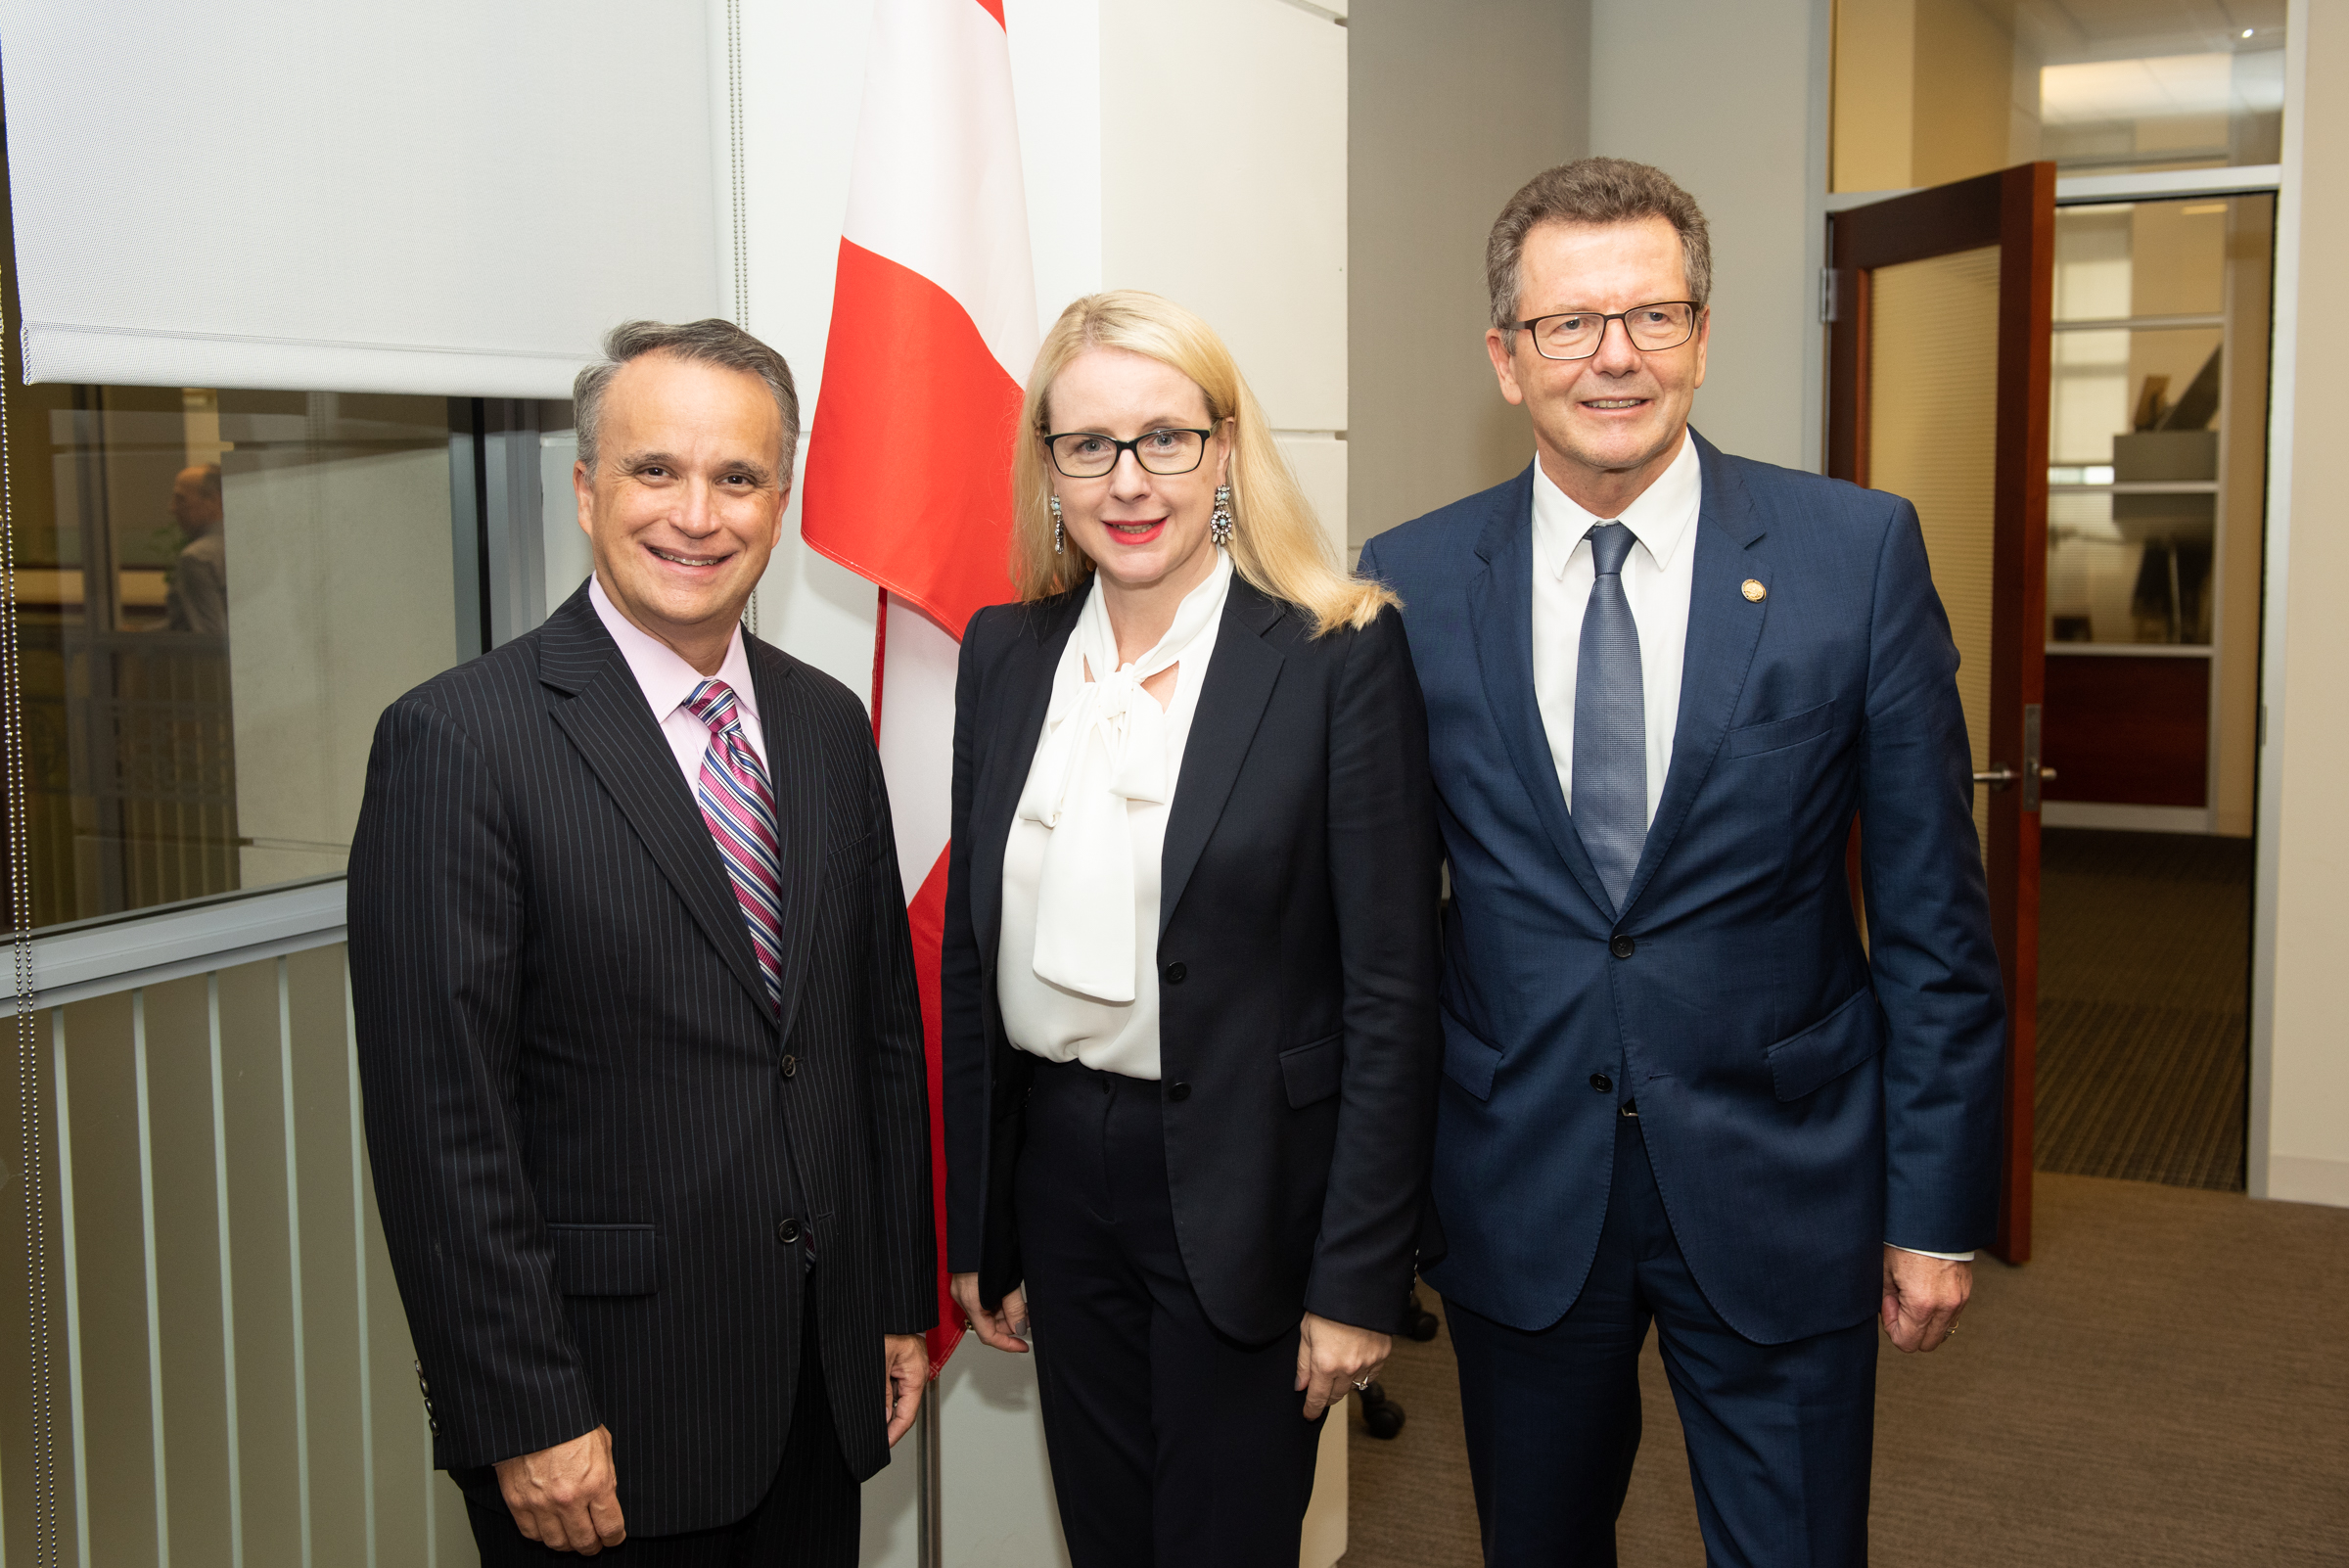 Minister Schramböck and Austrian Ambassador Waldner (right) together with the Vice President for Governmental and Regulatory Affairs at the IBM HQ Chris Padilla (c) Philipp Hartberger